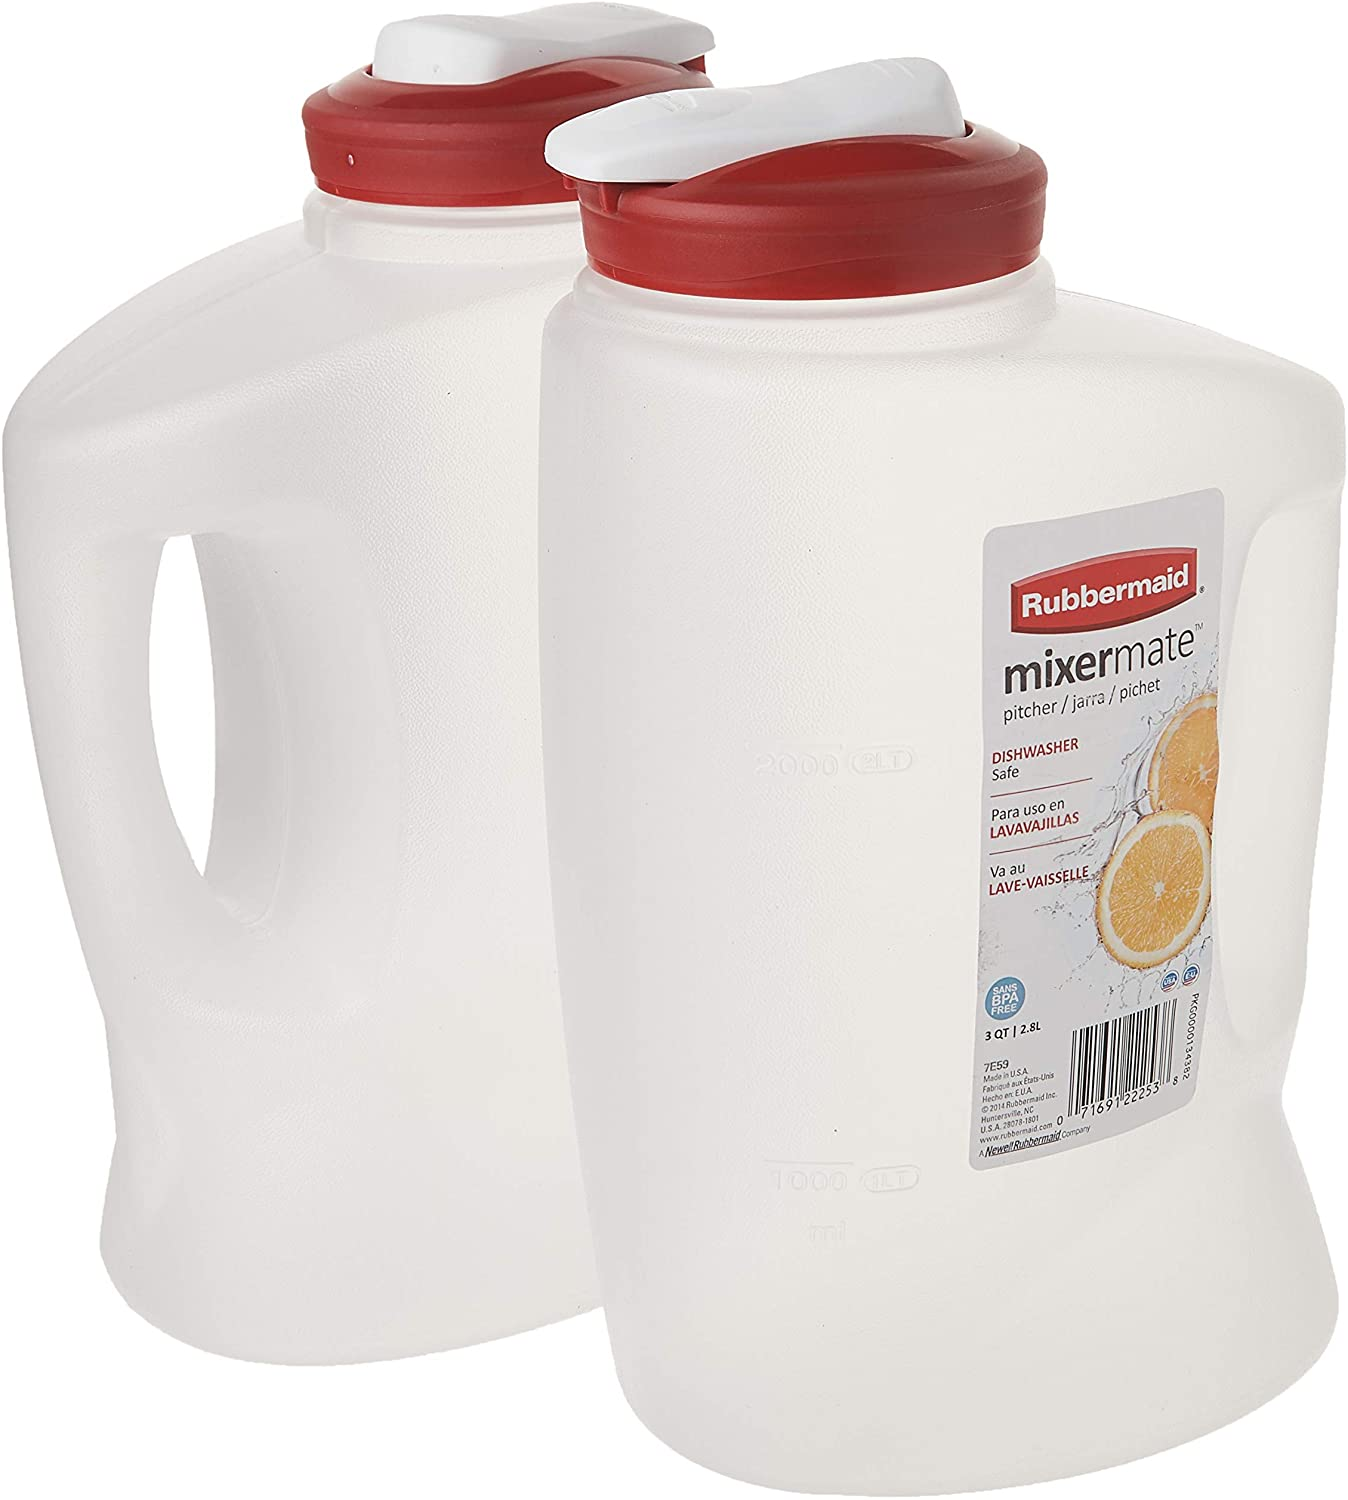 Rubbermaid 1776501 3-Qt. Seal N' Saver Pitcher/Bottle (Pack of 2), 2 pack, Red